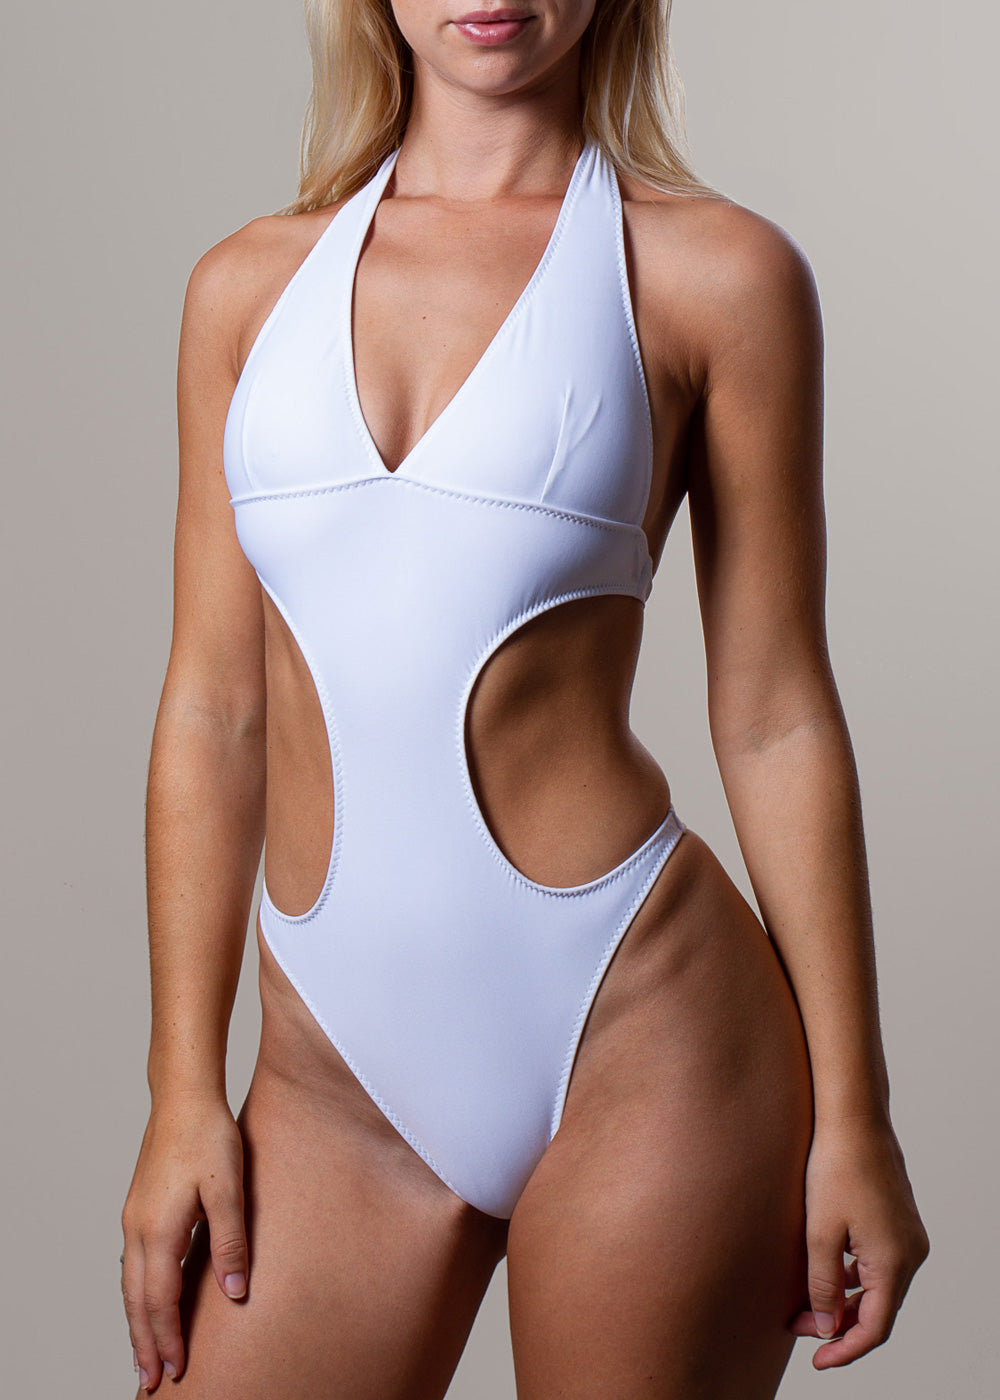 Alicia One Piece Cut-Out White Swimsuit